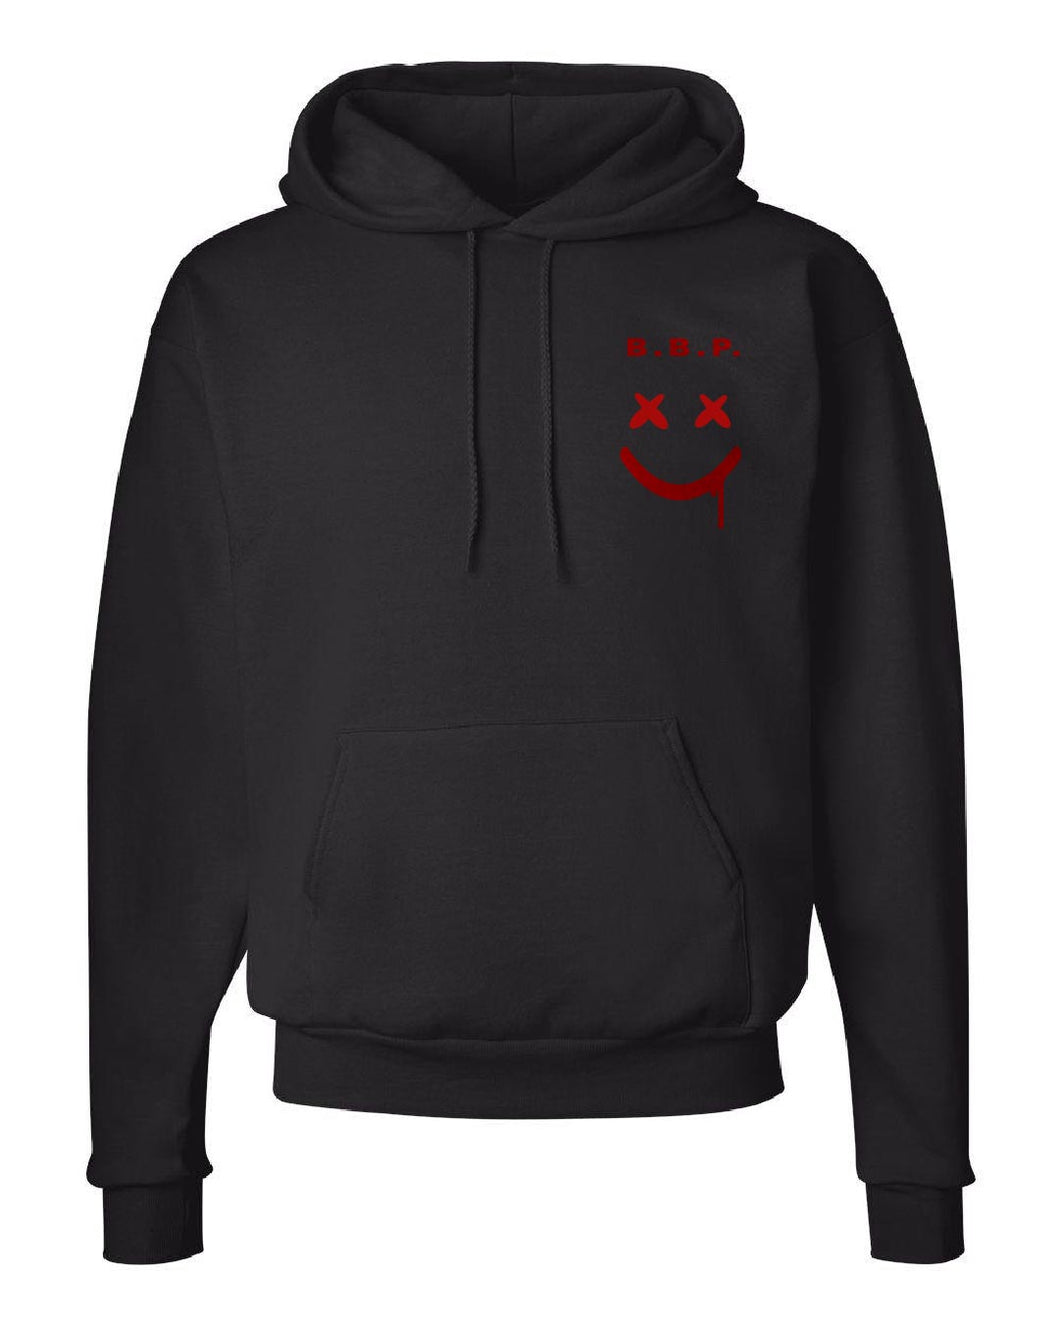 All Smiles Hoodie